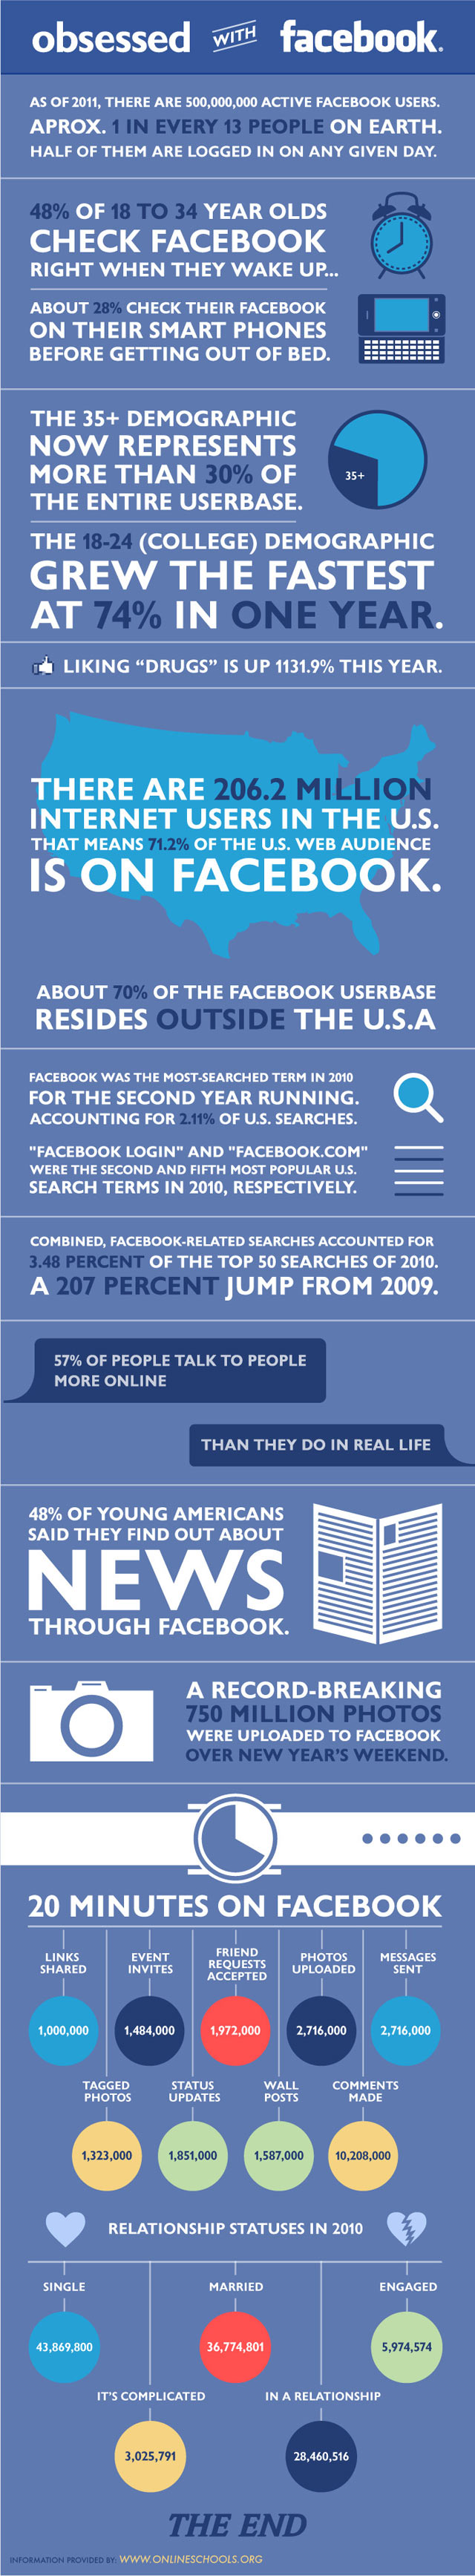 Facebook Stats [Image by Mashable]